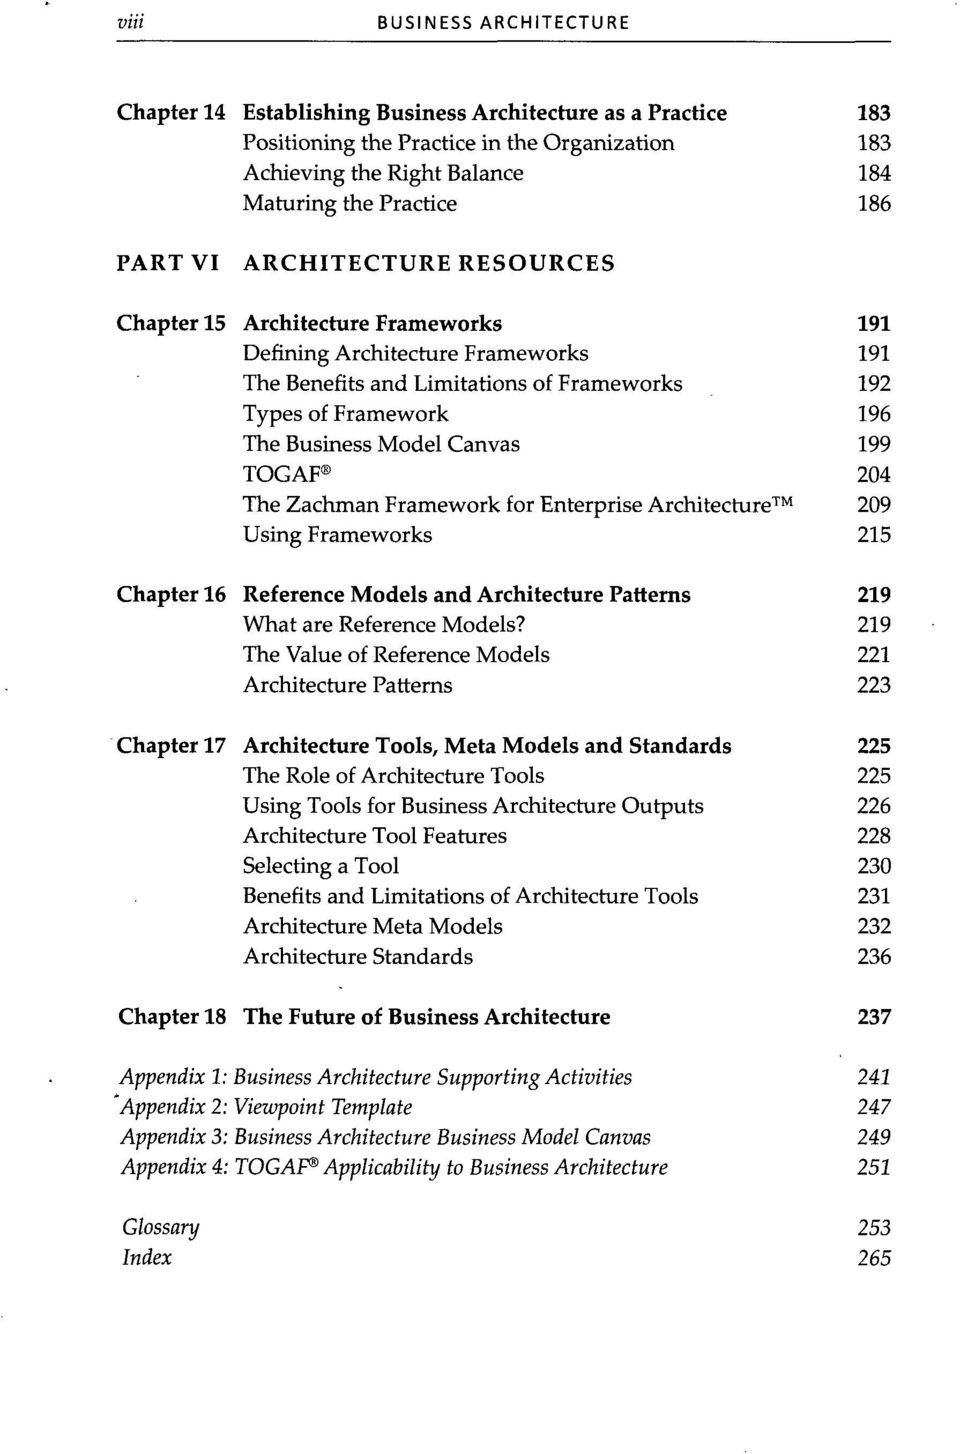 Canvas 199 TOGAF 204 The Zachman Framework for Enterprise Architecture 209 Using Frameworks 215 Chapter 16 Reference Models and Architecture Patterns 219 What are Reference Models?